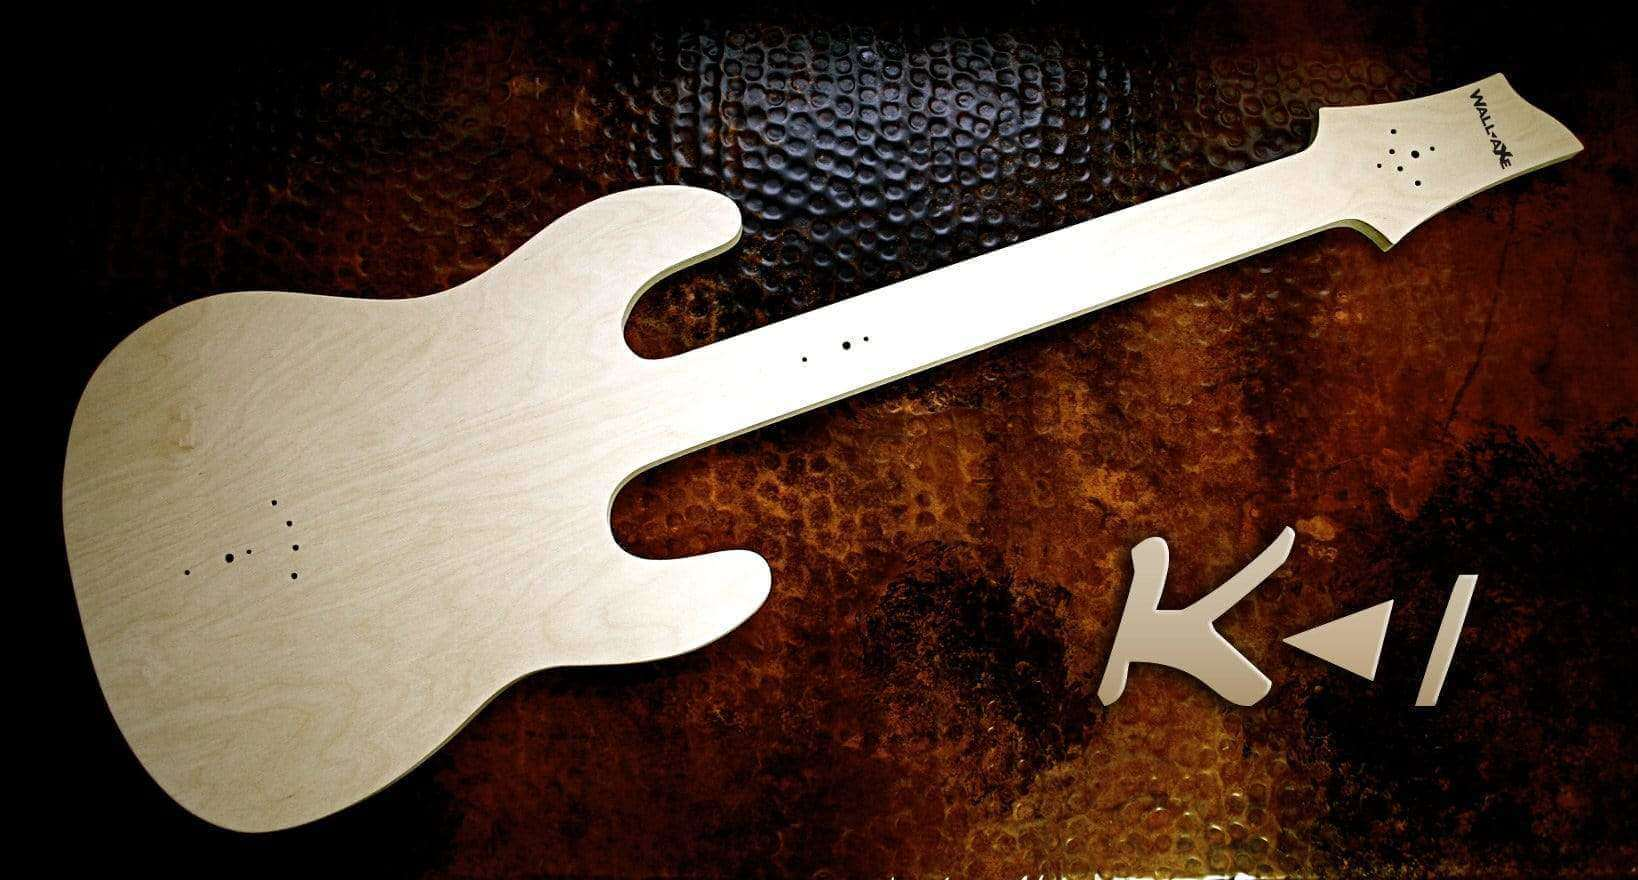 Shrek Guitar Hanger (DIY Kit w/ Hardware)-Wall-Axe Guitar Hangers